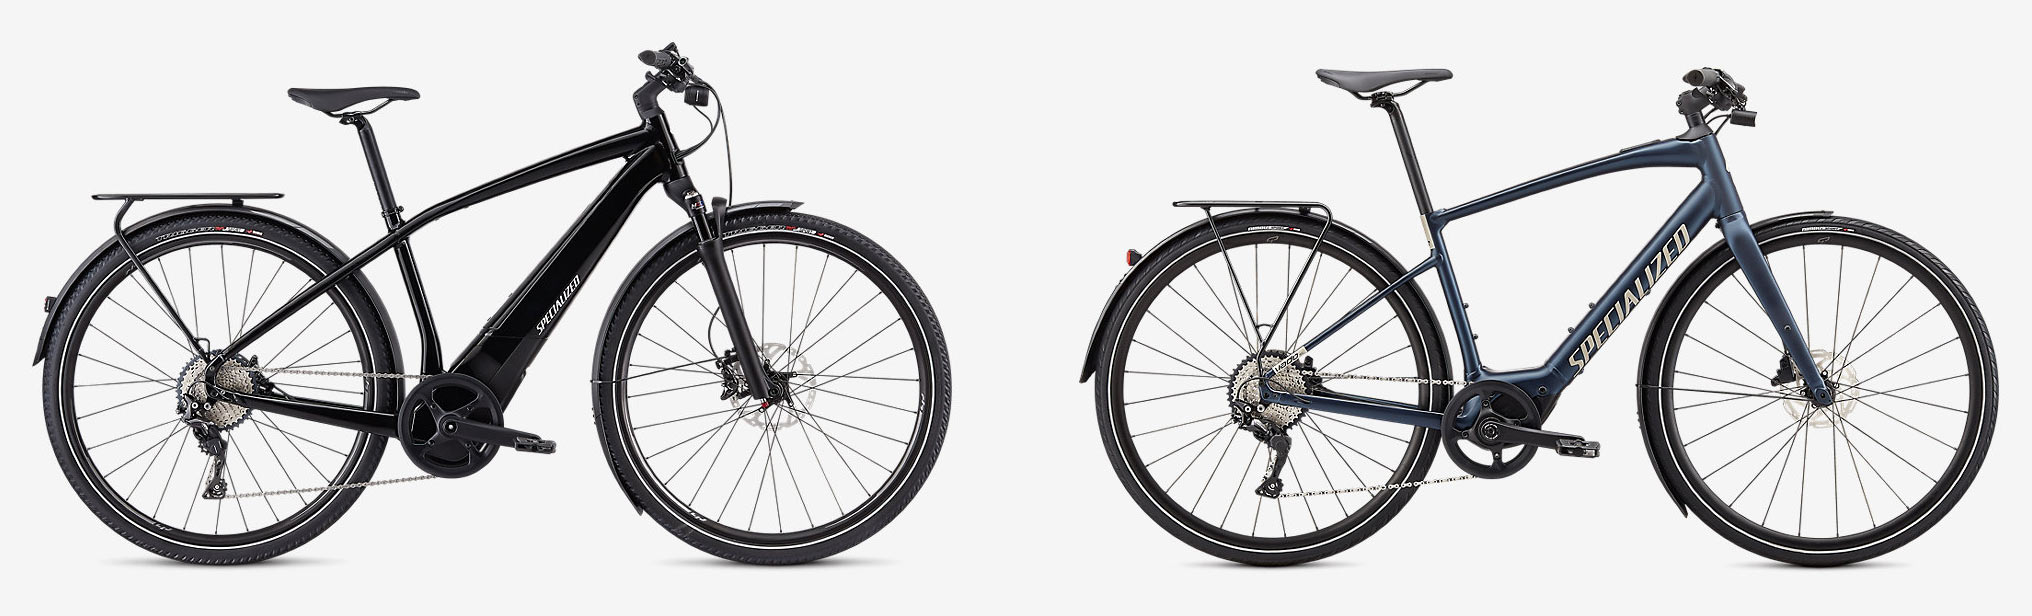 specialized turbo vado versus vado sl commuter e-bike comparison